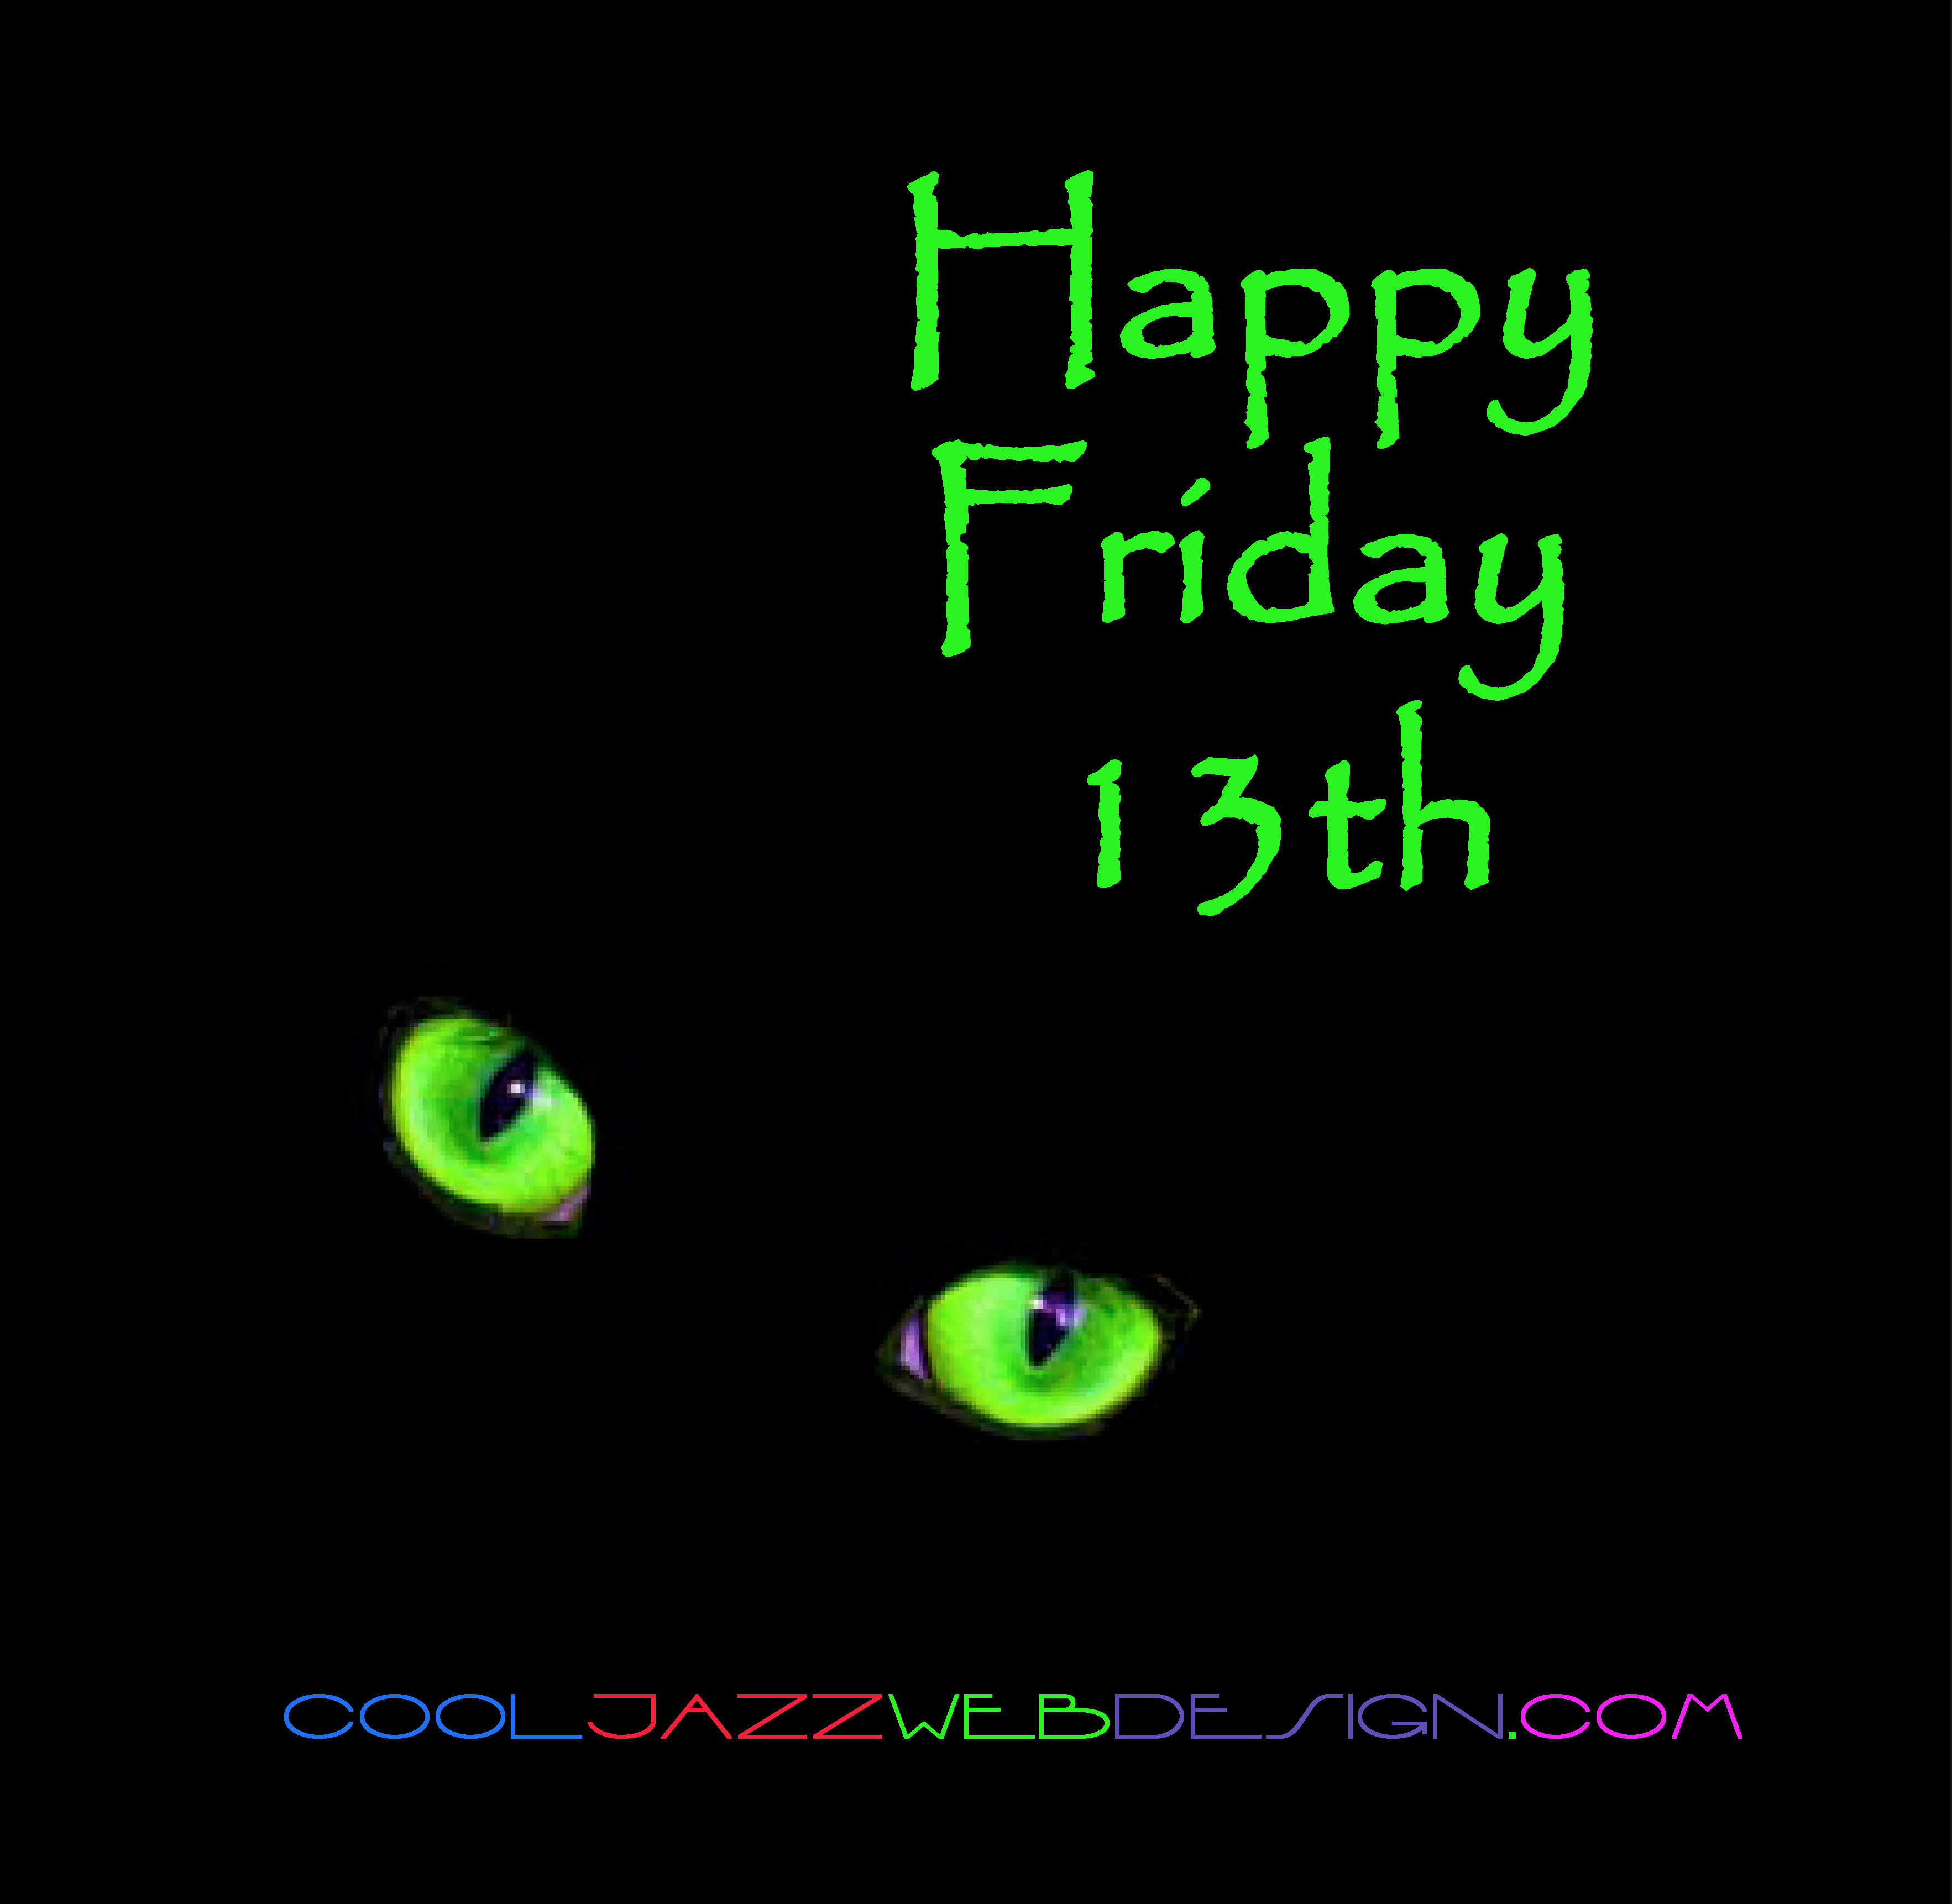 Friday The 13th Happy Holiday From Cool Jazz Web Design In